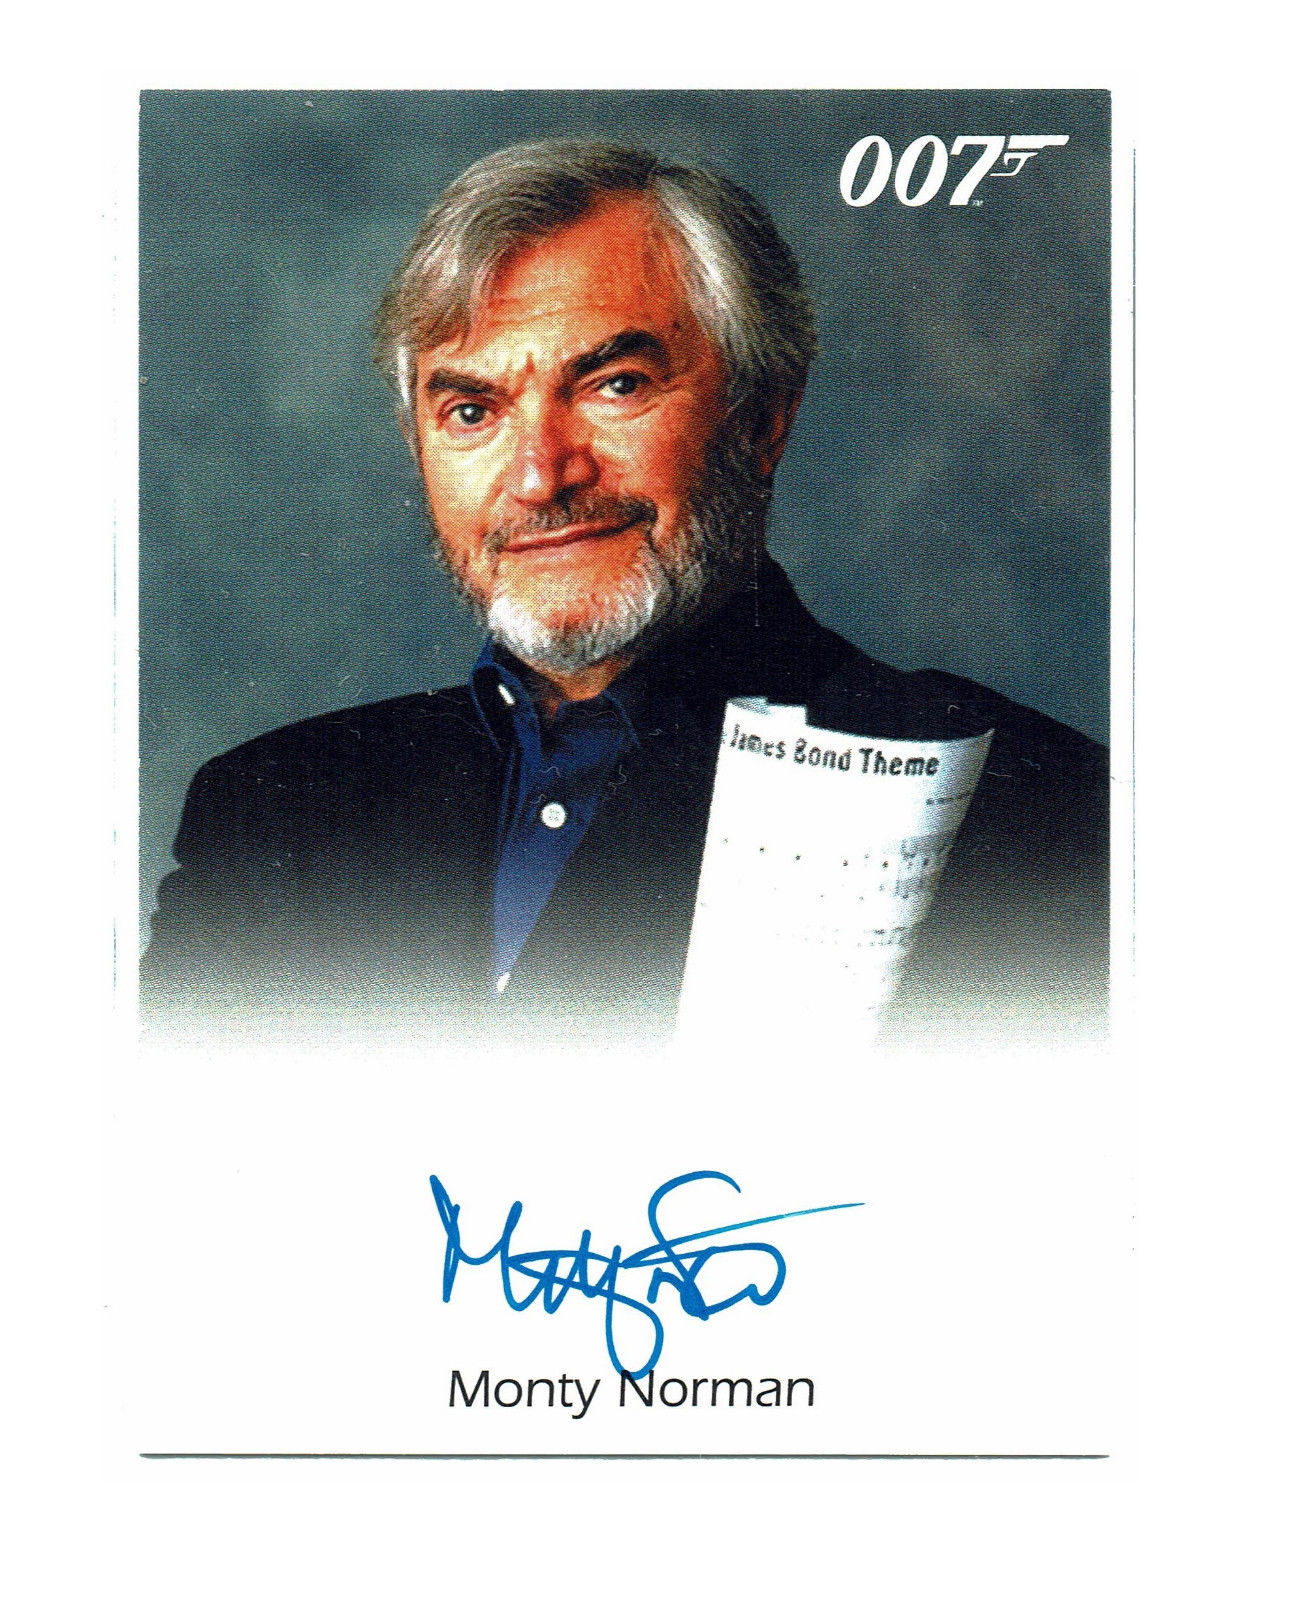 james bond trading cards price guide